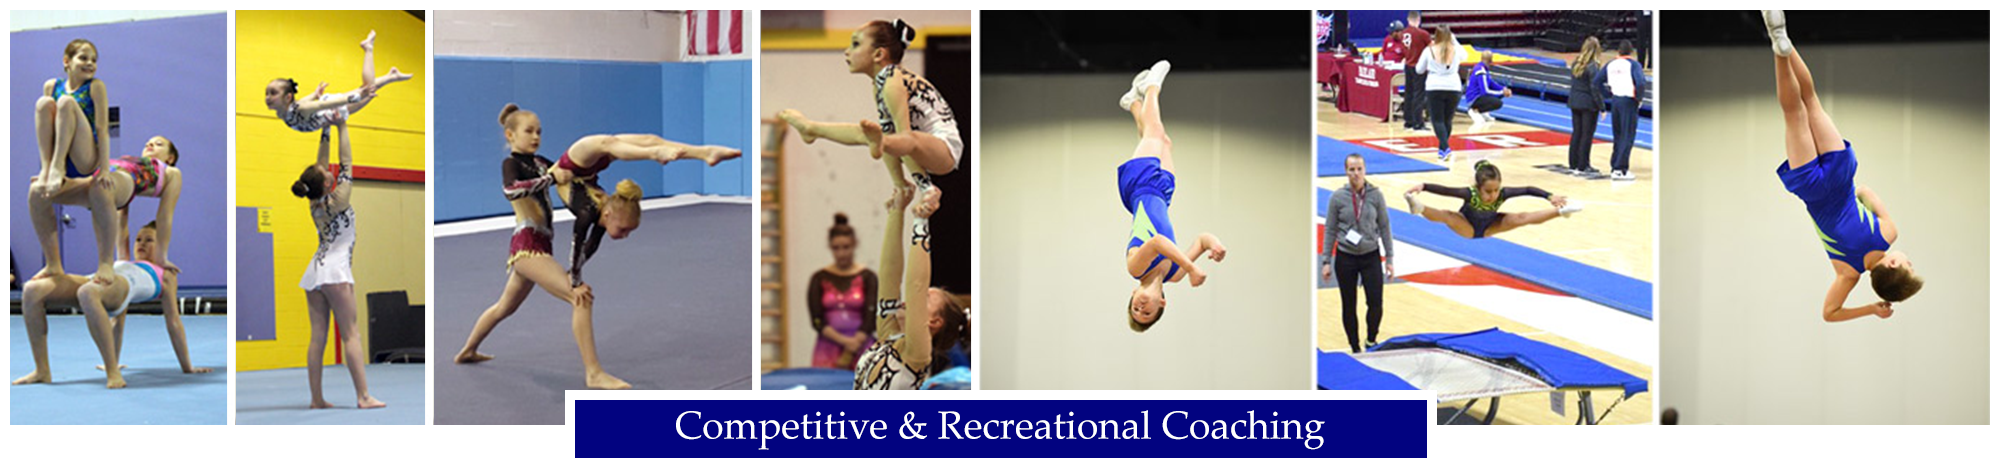 Competitive & Recreational Coaching